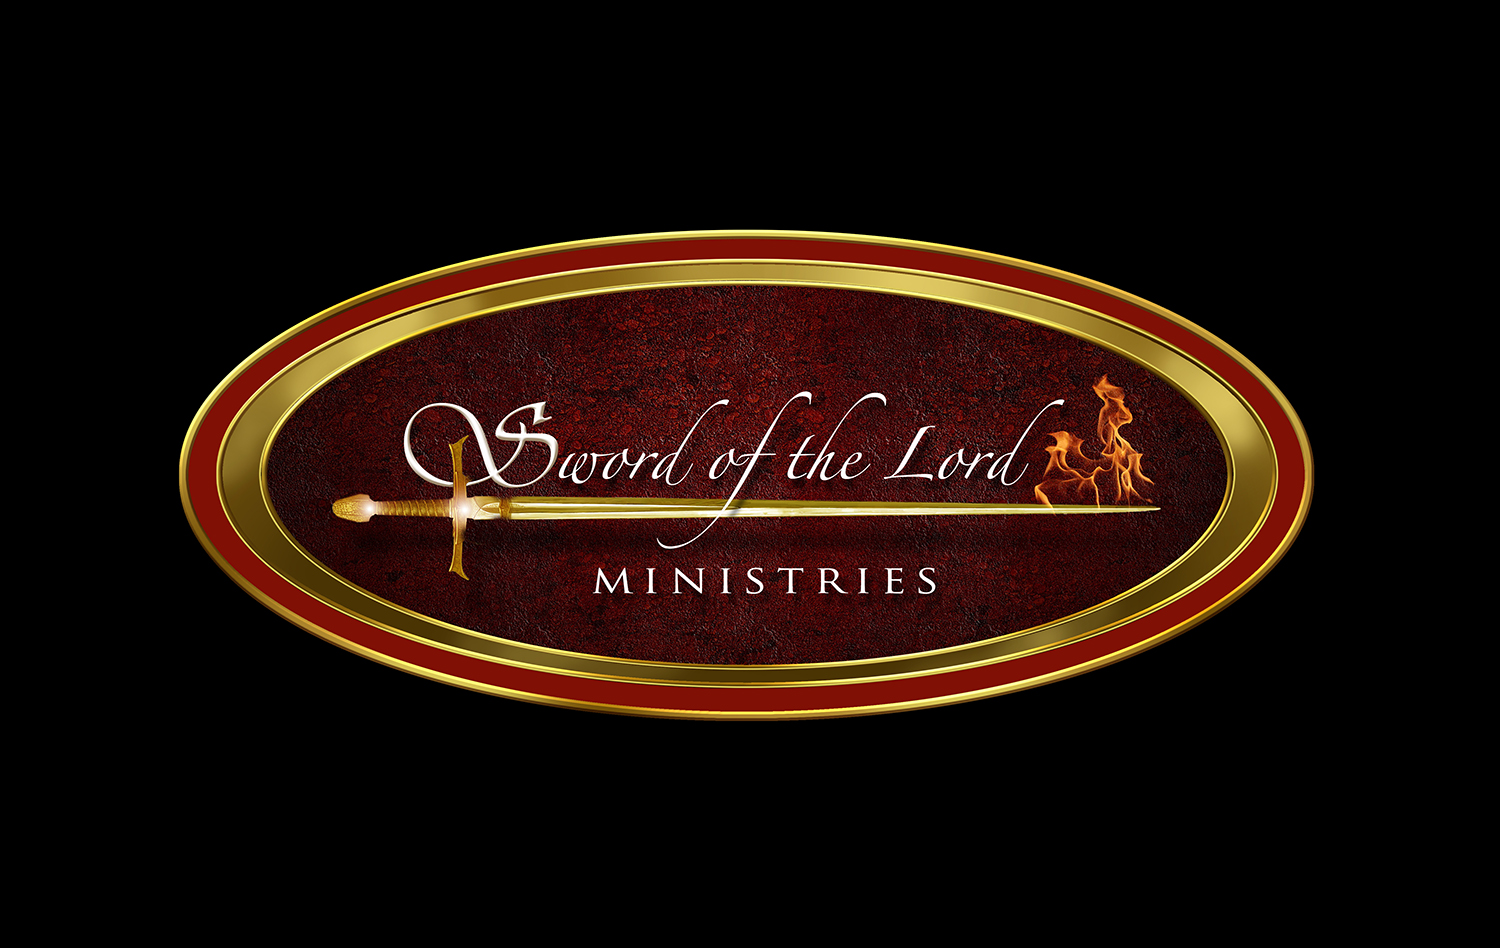 Sword of the Lord Ministries